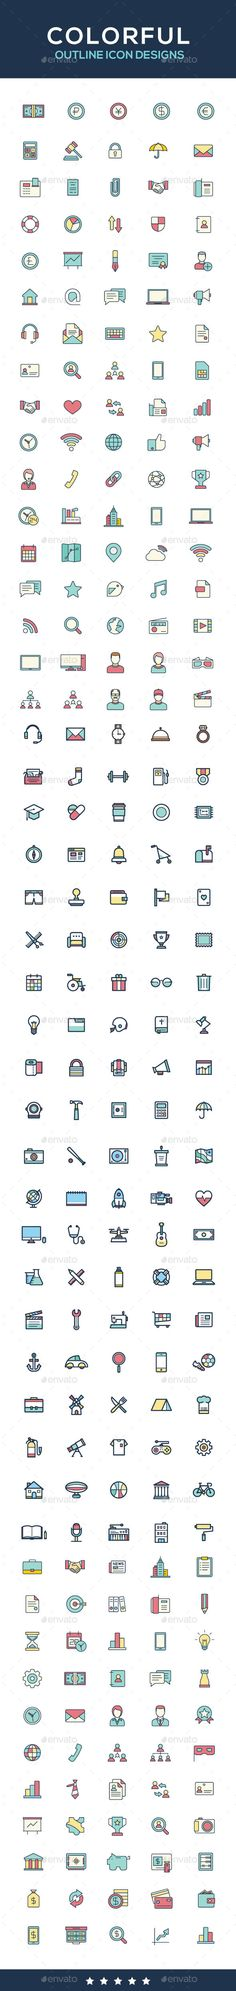 Buy 390 Web Hosting Flat Vector Icons by creativestall on GraphicRiver. There are 390 web hosting flat vector icons in this pack. These creative and conceptual set of web hosting high quali. Web Design, Flat Design Icons, Icon Design, Flat Icons, Graphic Design, Design Art, Design Elements, Resources Icon, Human Resources